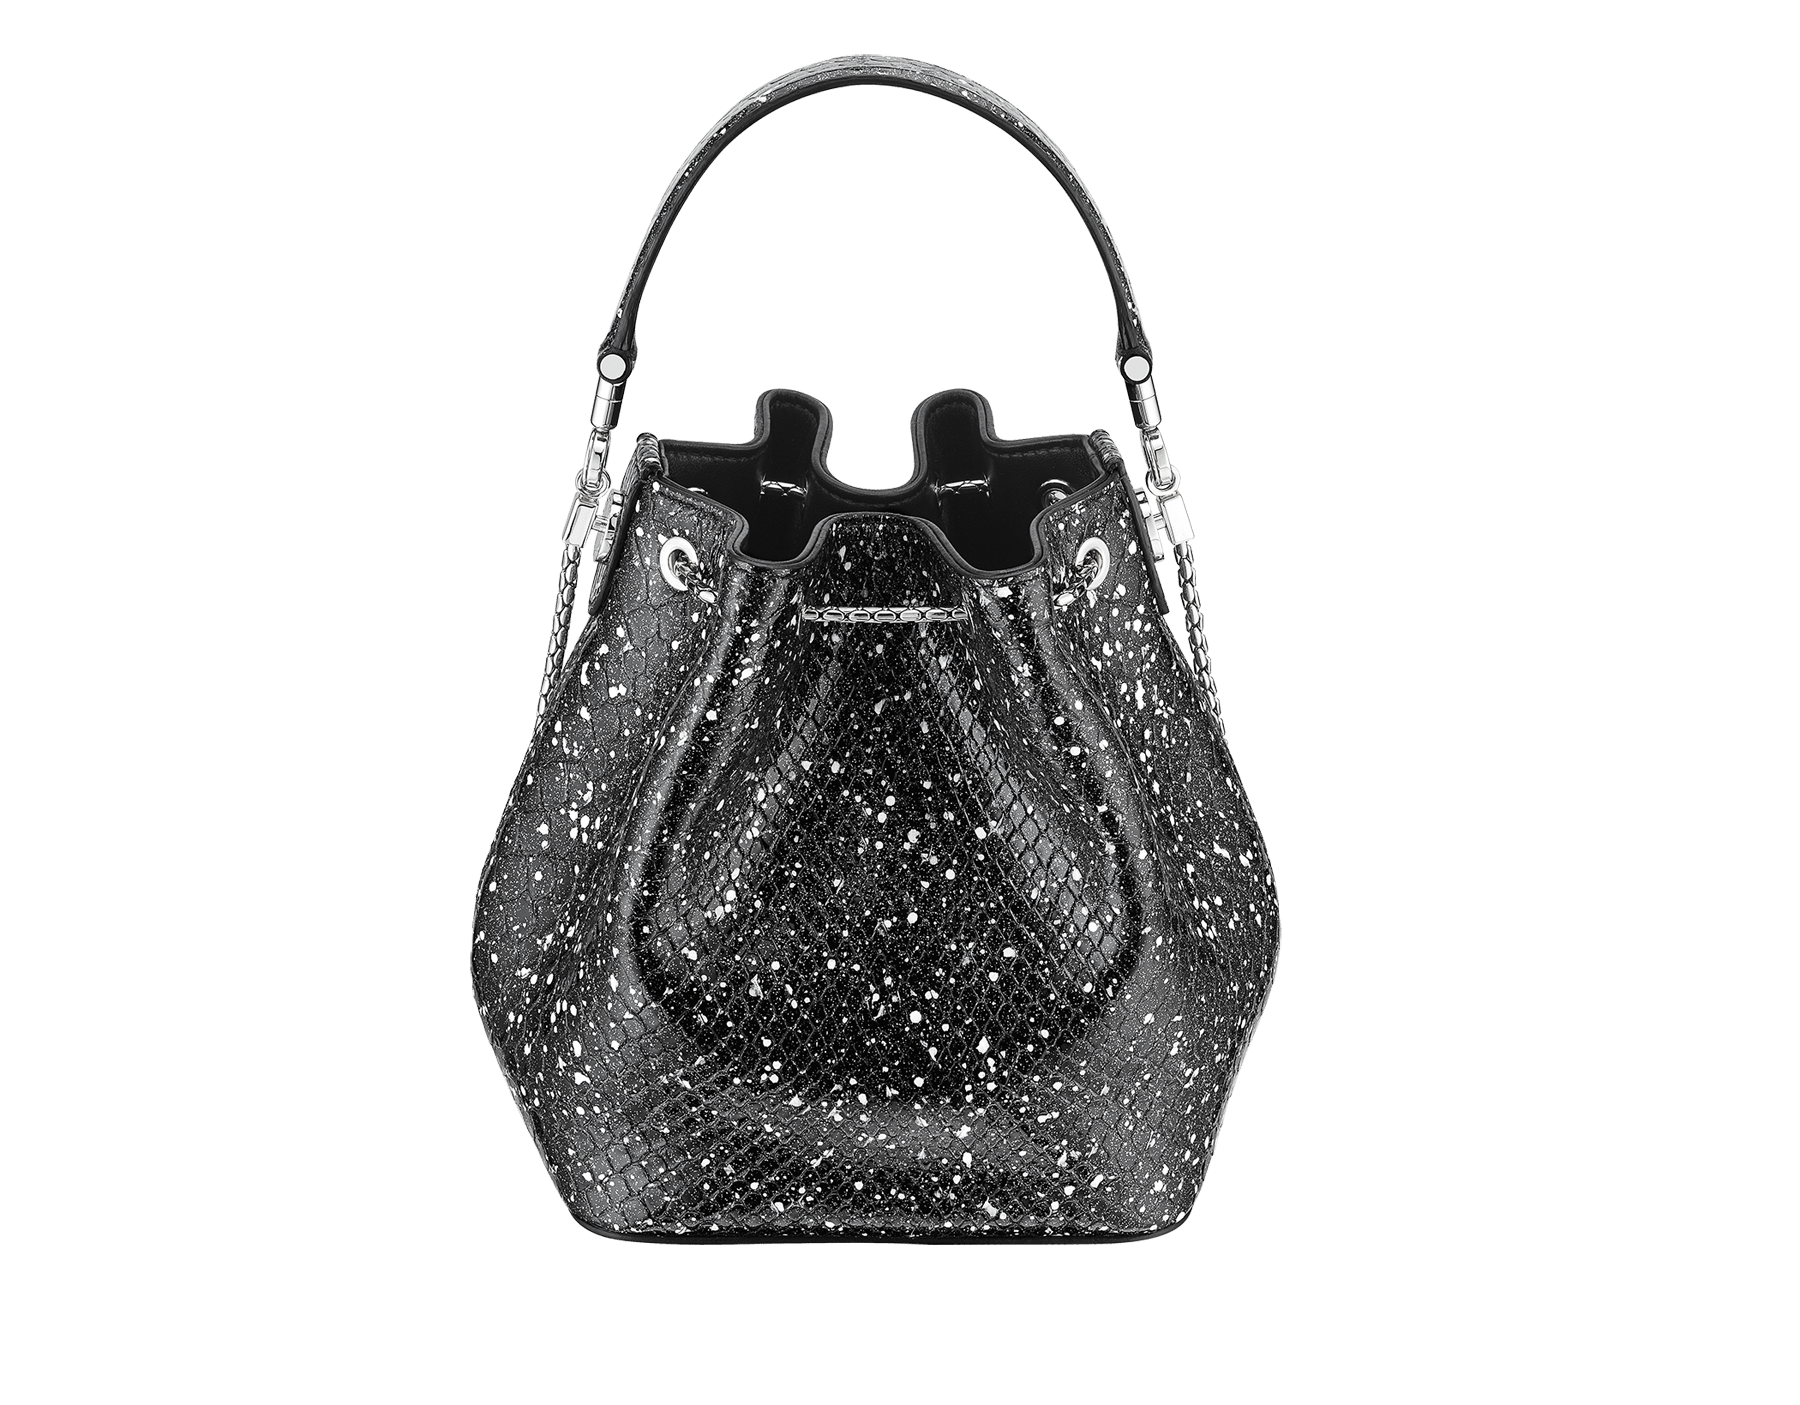 Serpenti Forever bucket bag in black and white Cosmic python skin and black nappa inner lining. Snakehead closure in palladium plated brass decorated with black and white enamel, and black onyx eyes. 288112 image 3